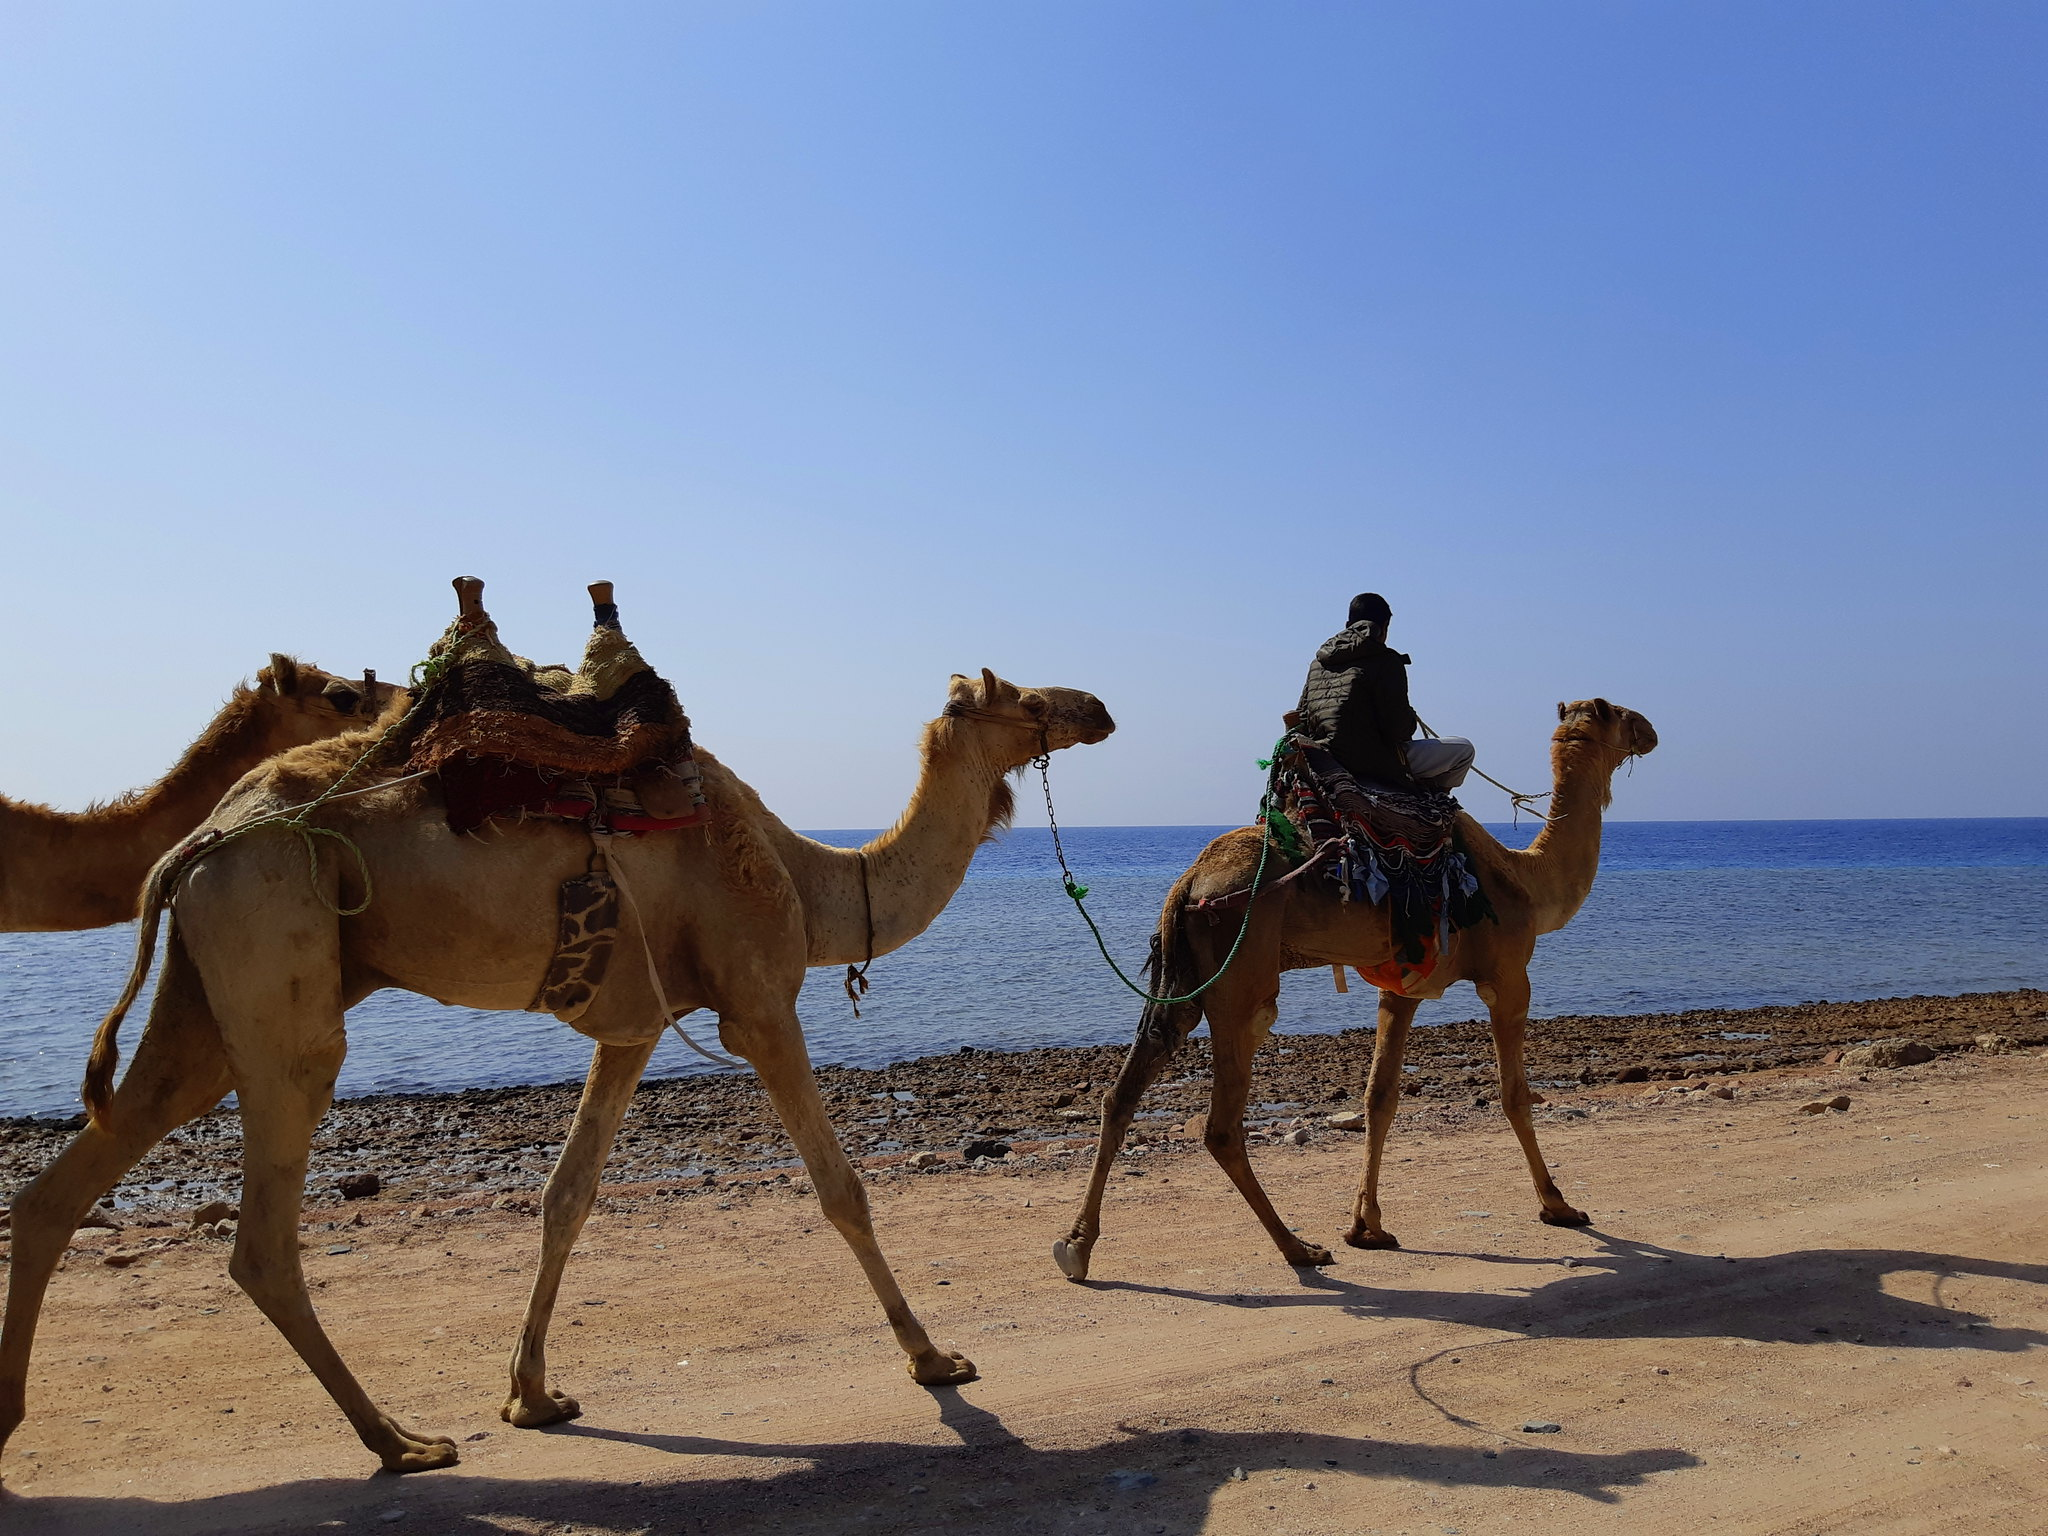 Dahab is by the Red Sea